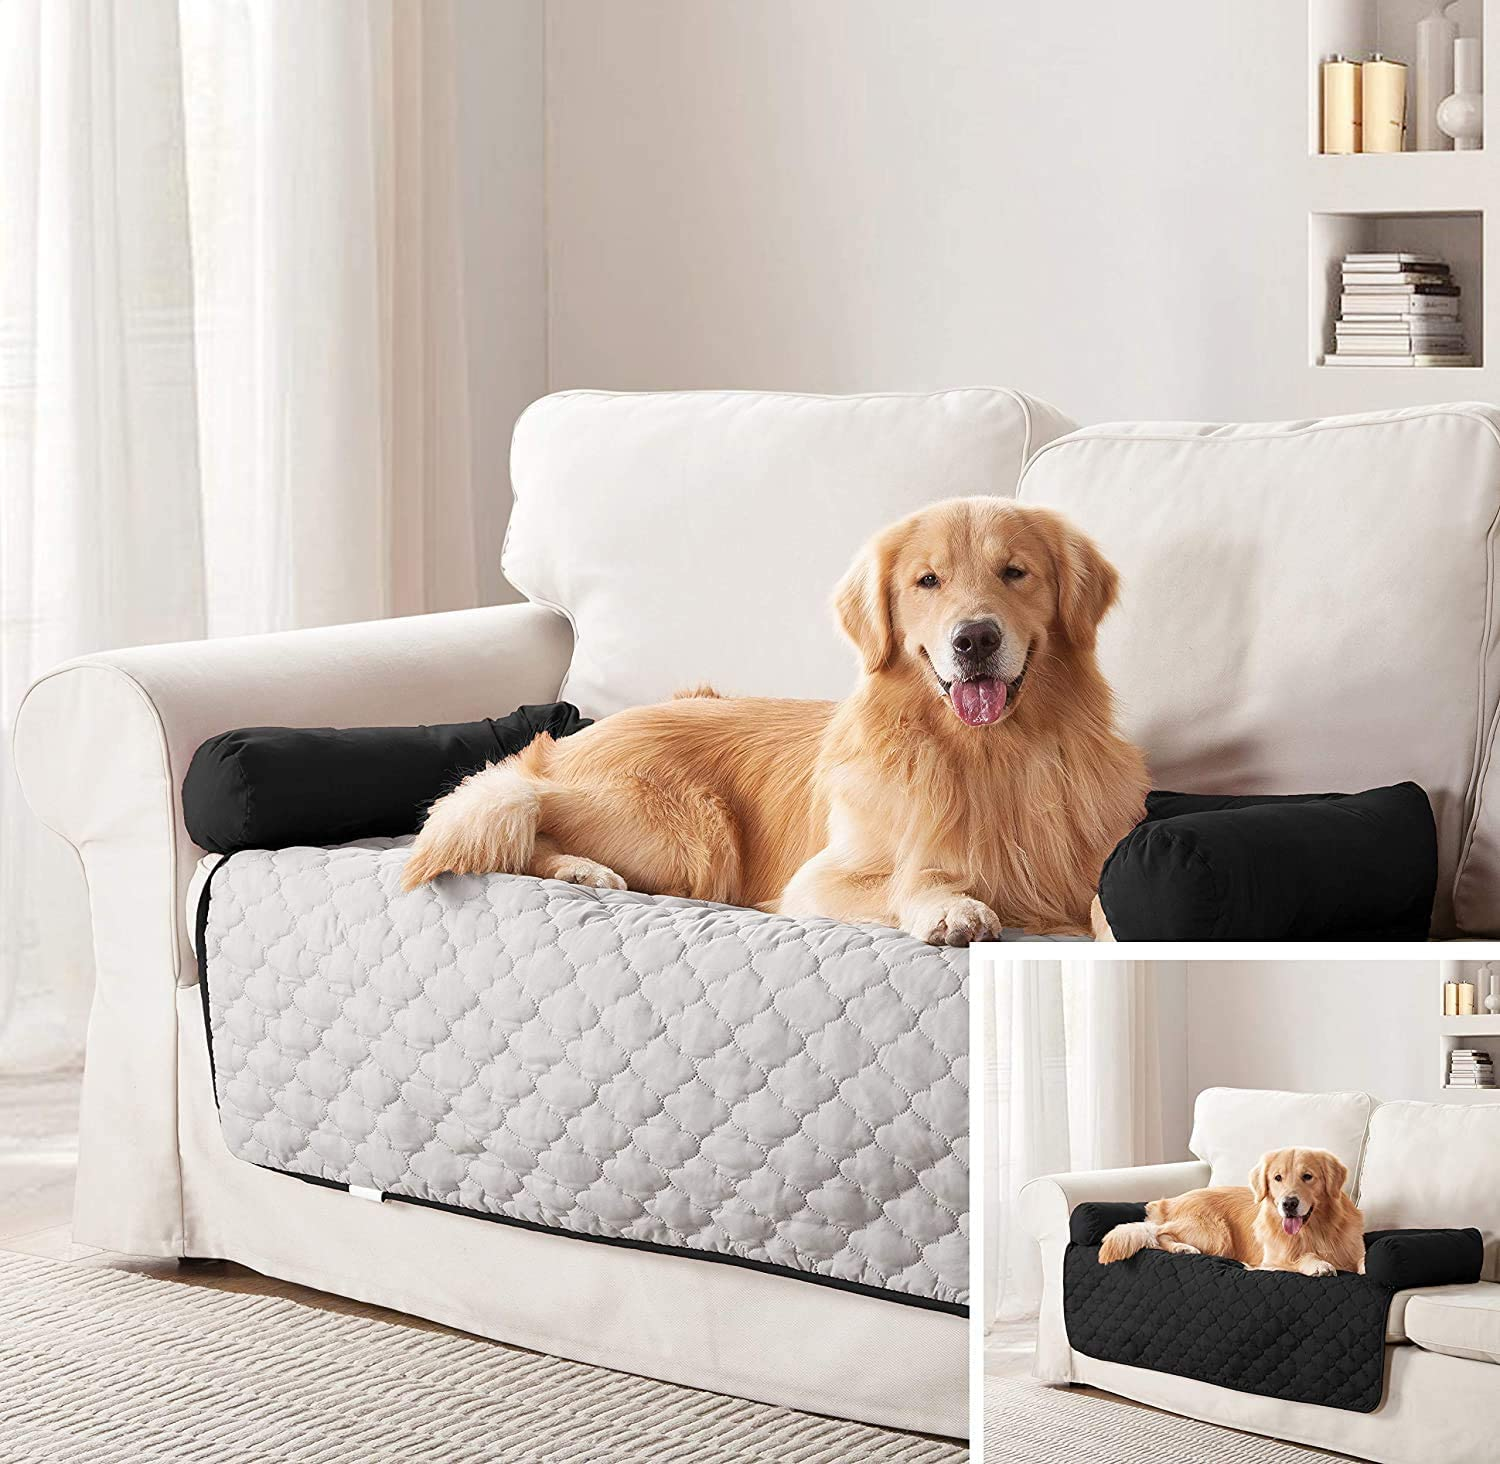 Pet Furniture Cover - Sofa Couch Cover Two-Tone Reversible Water-Resistant Living Room Furniture Cover Protector Pet Bed for Dogs and Cats (Silver/Black, Sofa)